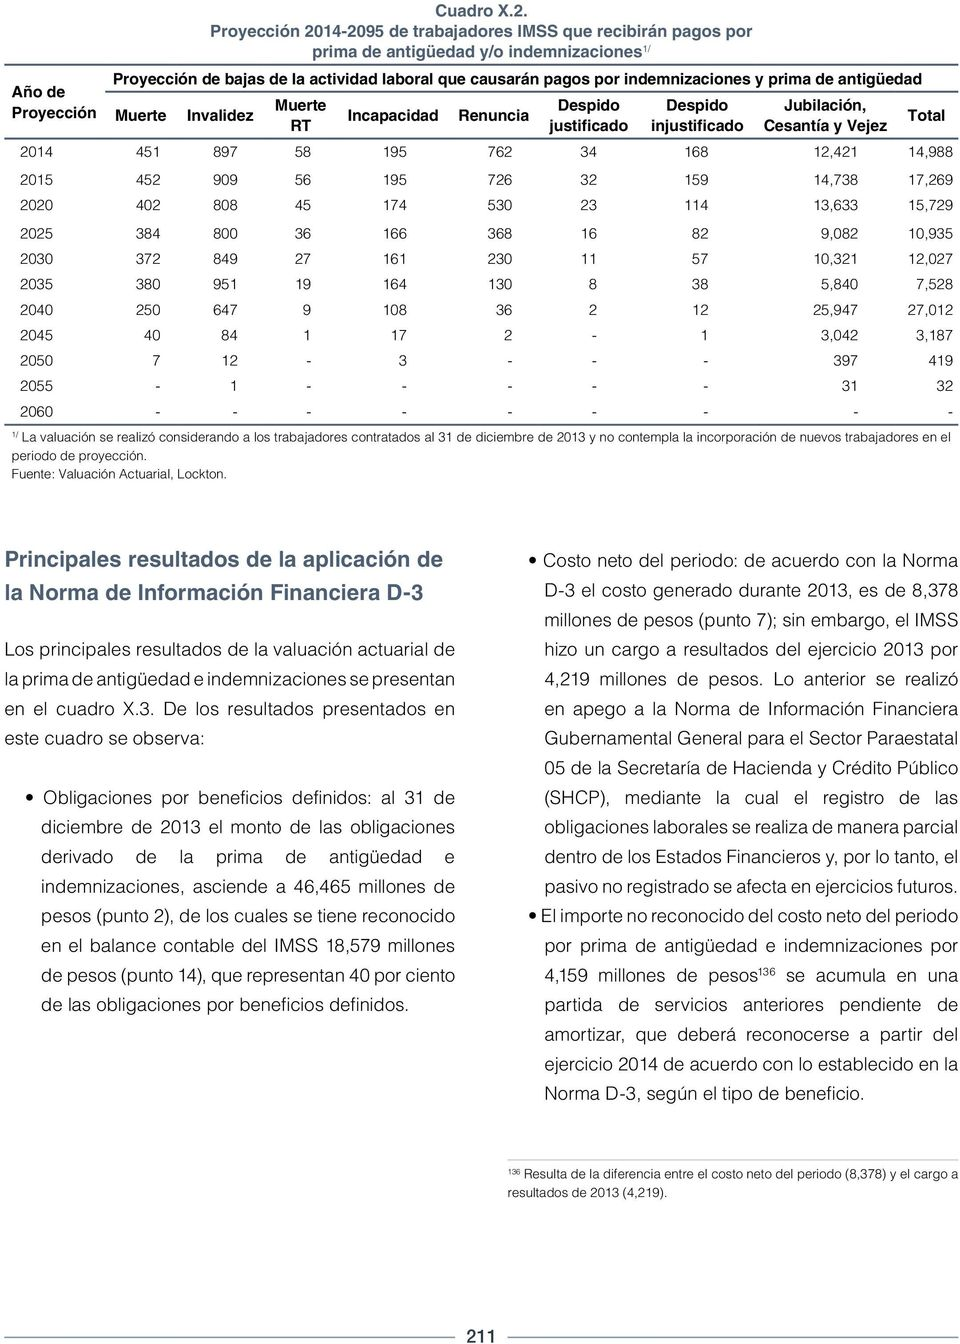 indemnizaciones y prima de antigüedad Muerte Invalidez Muerte RT Incapacidad Renuncia Despido justificado Despido injustificado Jubilación, Cesantía y Vejez Total 2014 451 897 58 195 762 34 168